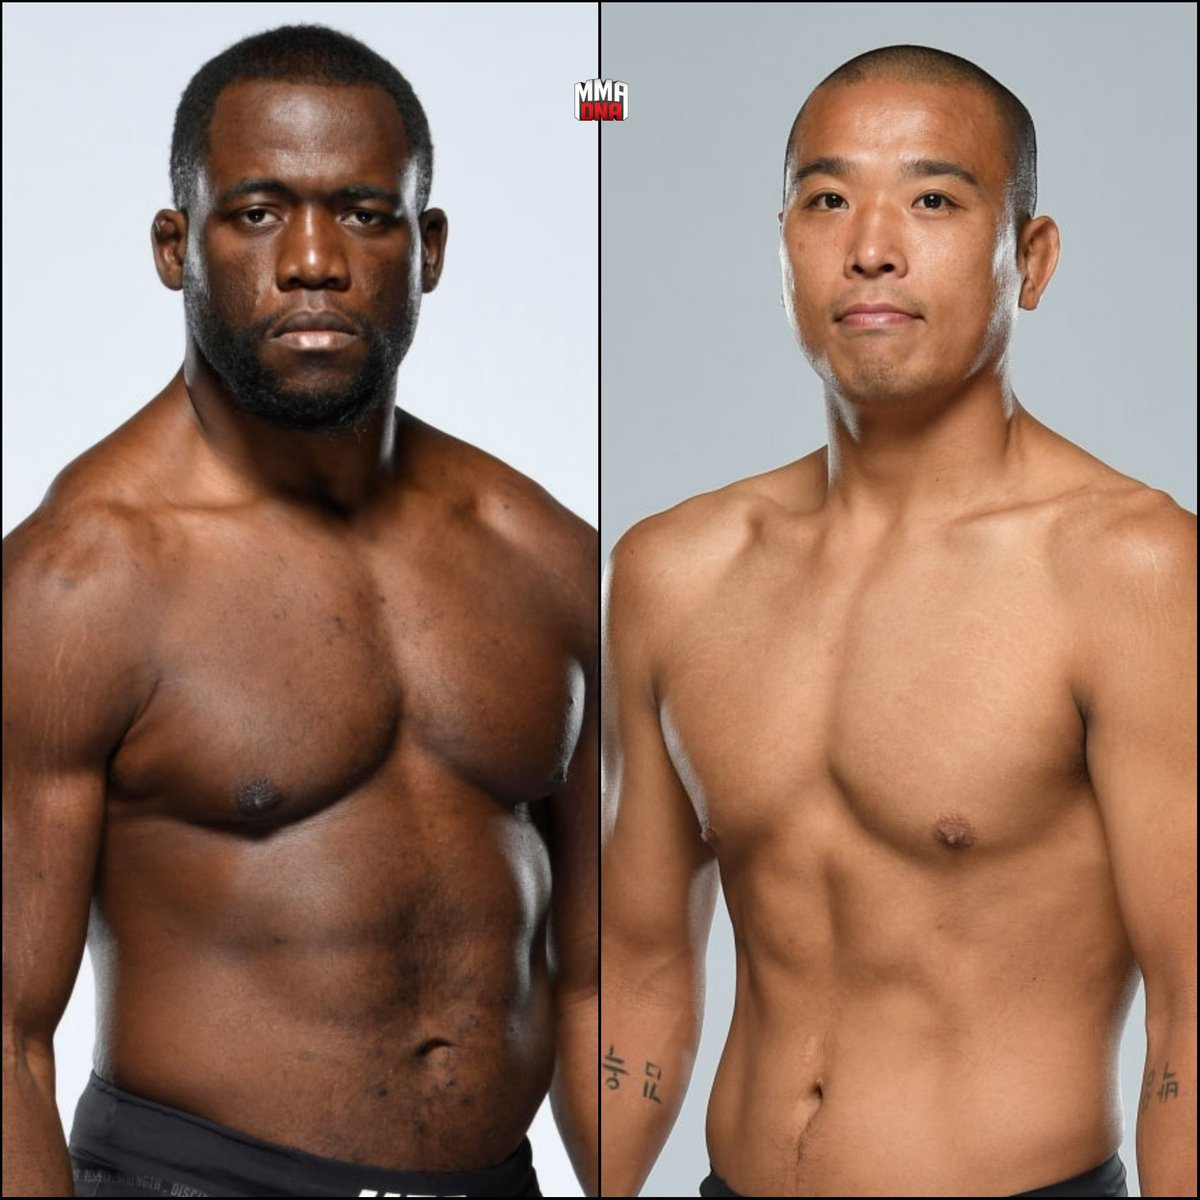 🚨🚨BREAKING🚨🚨  Tafon Nchukwi vs. Jun Yong Park set for May 8th.  #UFC #MMA #UFCESPN